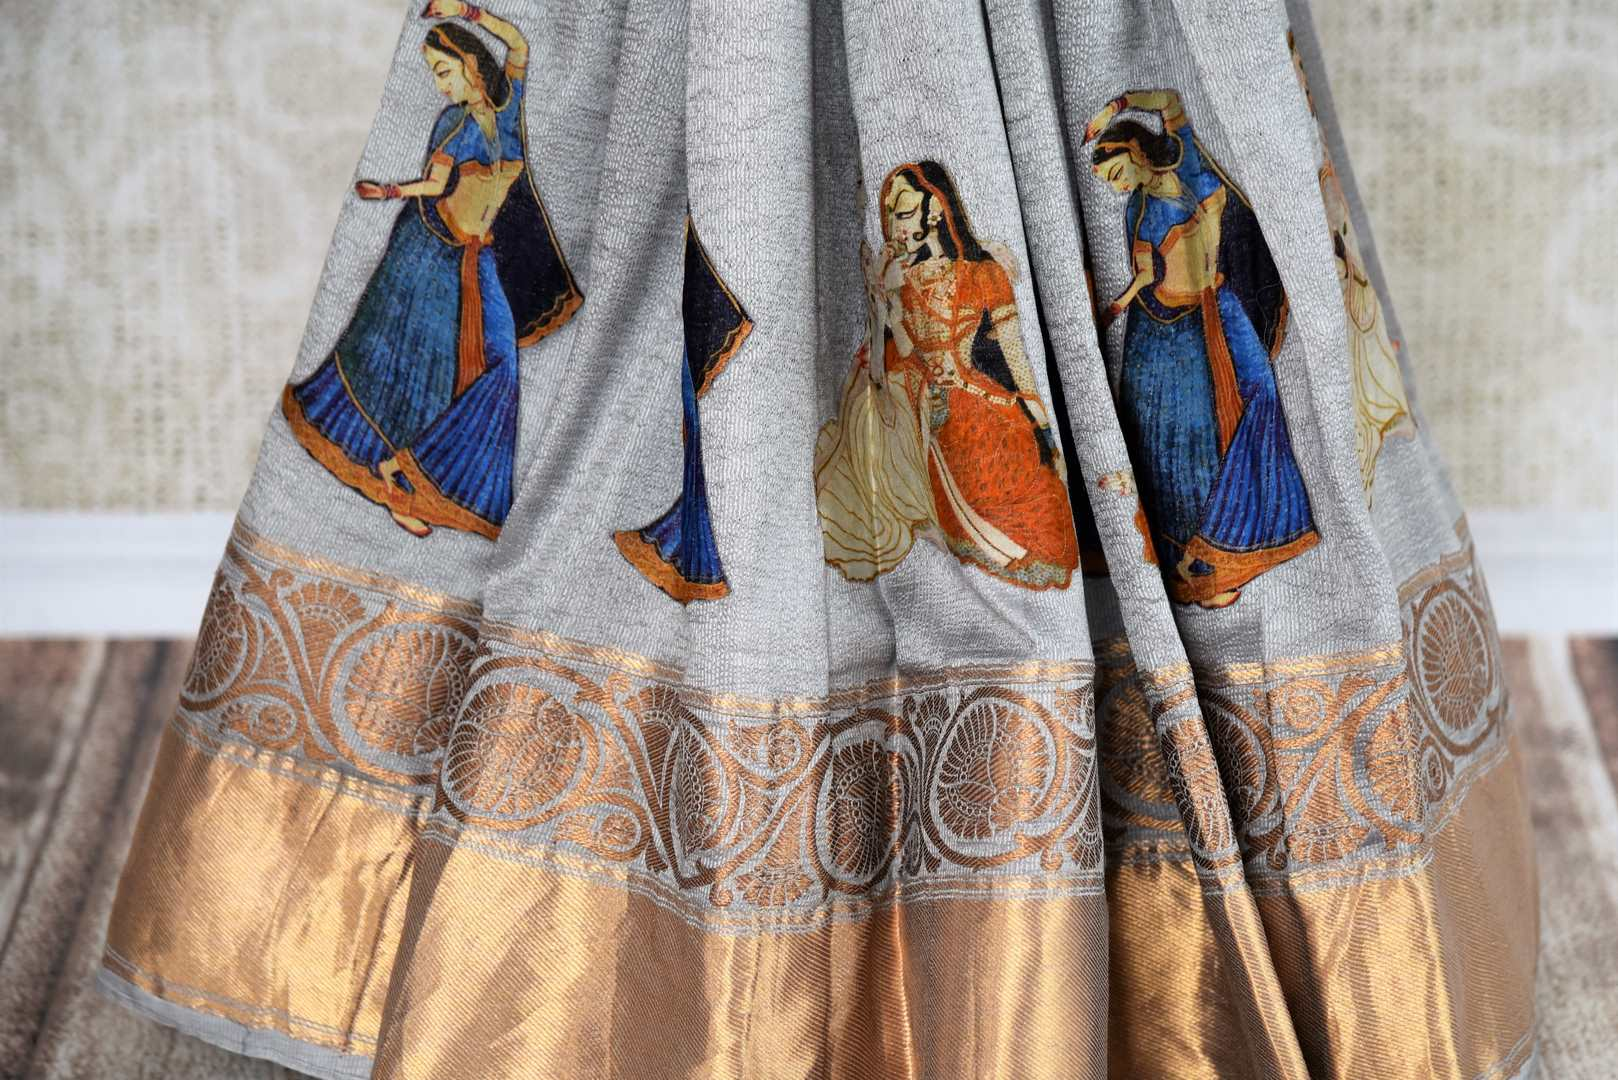 Buy elegant grey muga Banarasi saree online in USA with applique work. The saree is a classic choice for parties and special occasions. For Indian women in USA, Pure Elegance brings a range of stunning Indian handloom saris online and at their exclusive fashion store in USA.-pleats